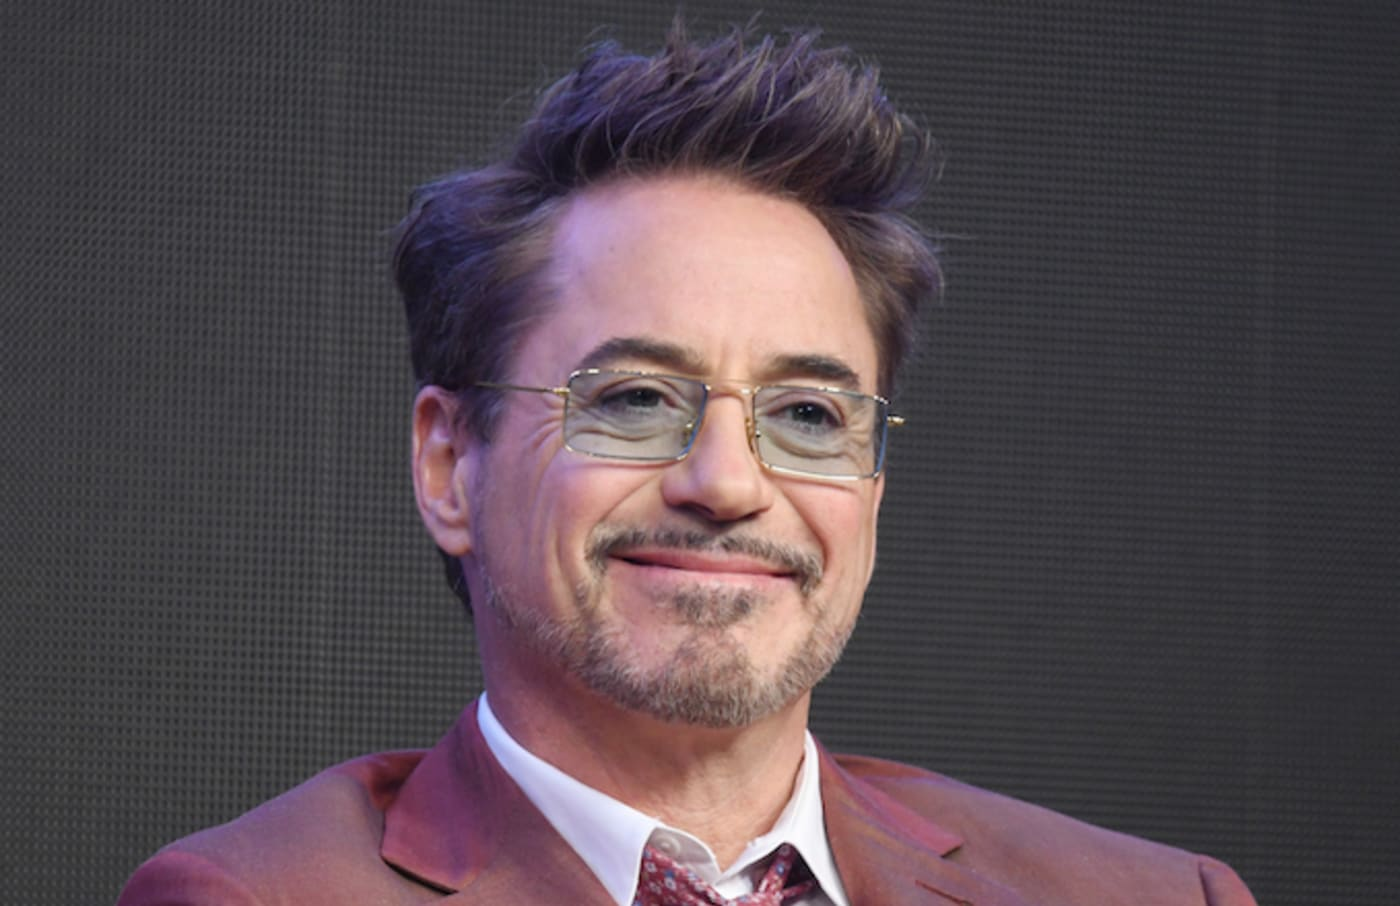 Robert Downey Jr. during a press conference for 'Avengers: End Game.'